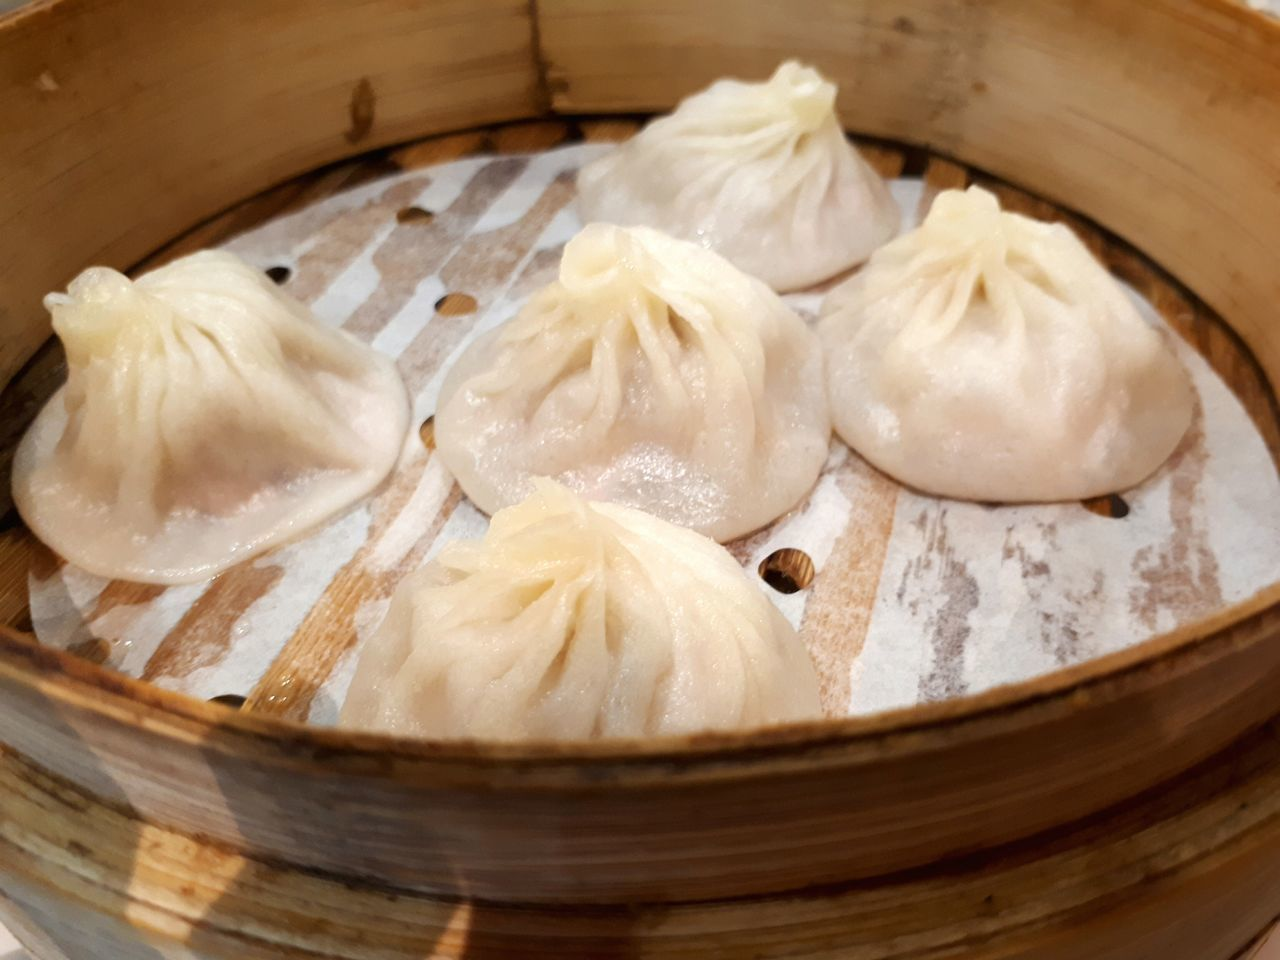 Juicy Xiao Long Baos for warmth on a cold, rainy day ~ 4/3/2017 Food Food And Drink Close-up No People Indoors  Healthy Eating Steamed Dumplings Xiao Long Bao Pork Dumplings Chinese Cuisine Shanghai Food